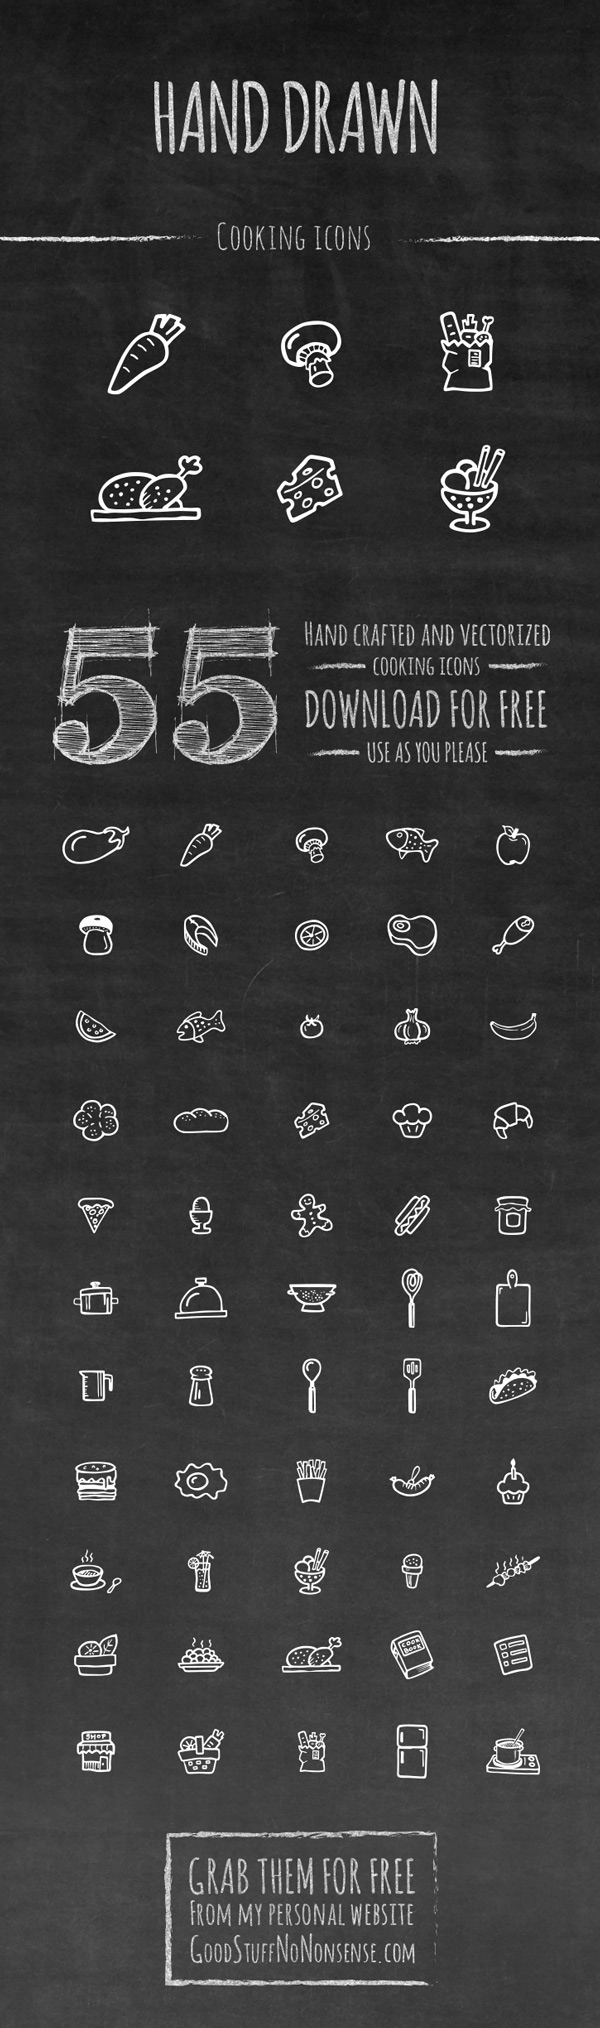 cooking-hand-drawn-icons